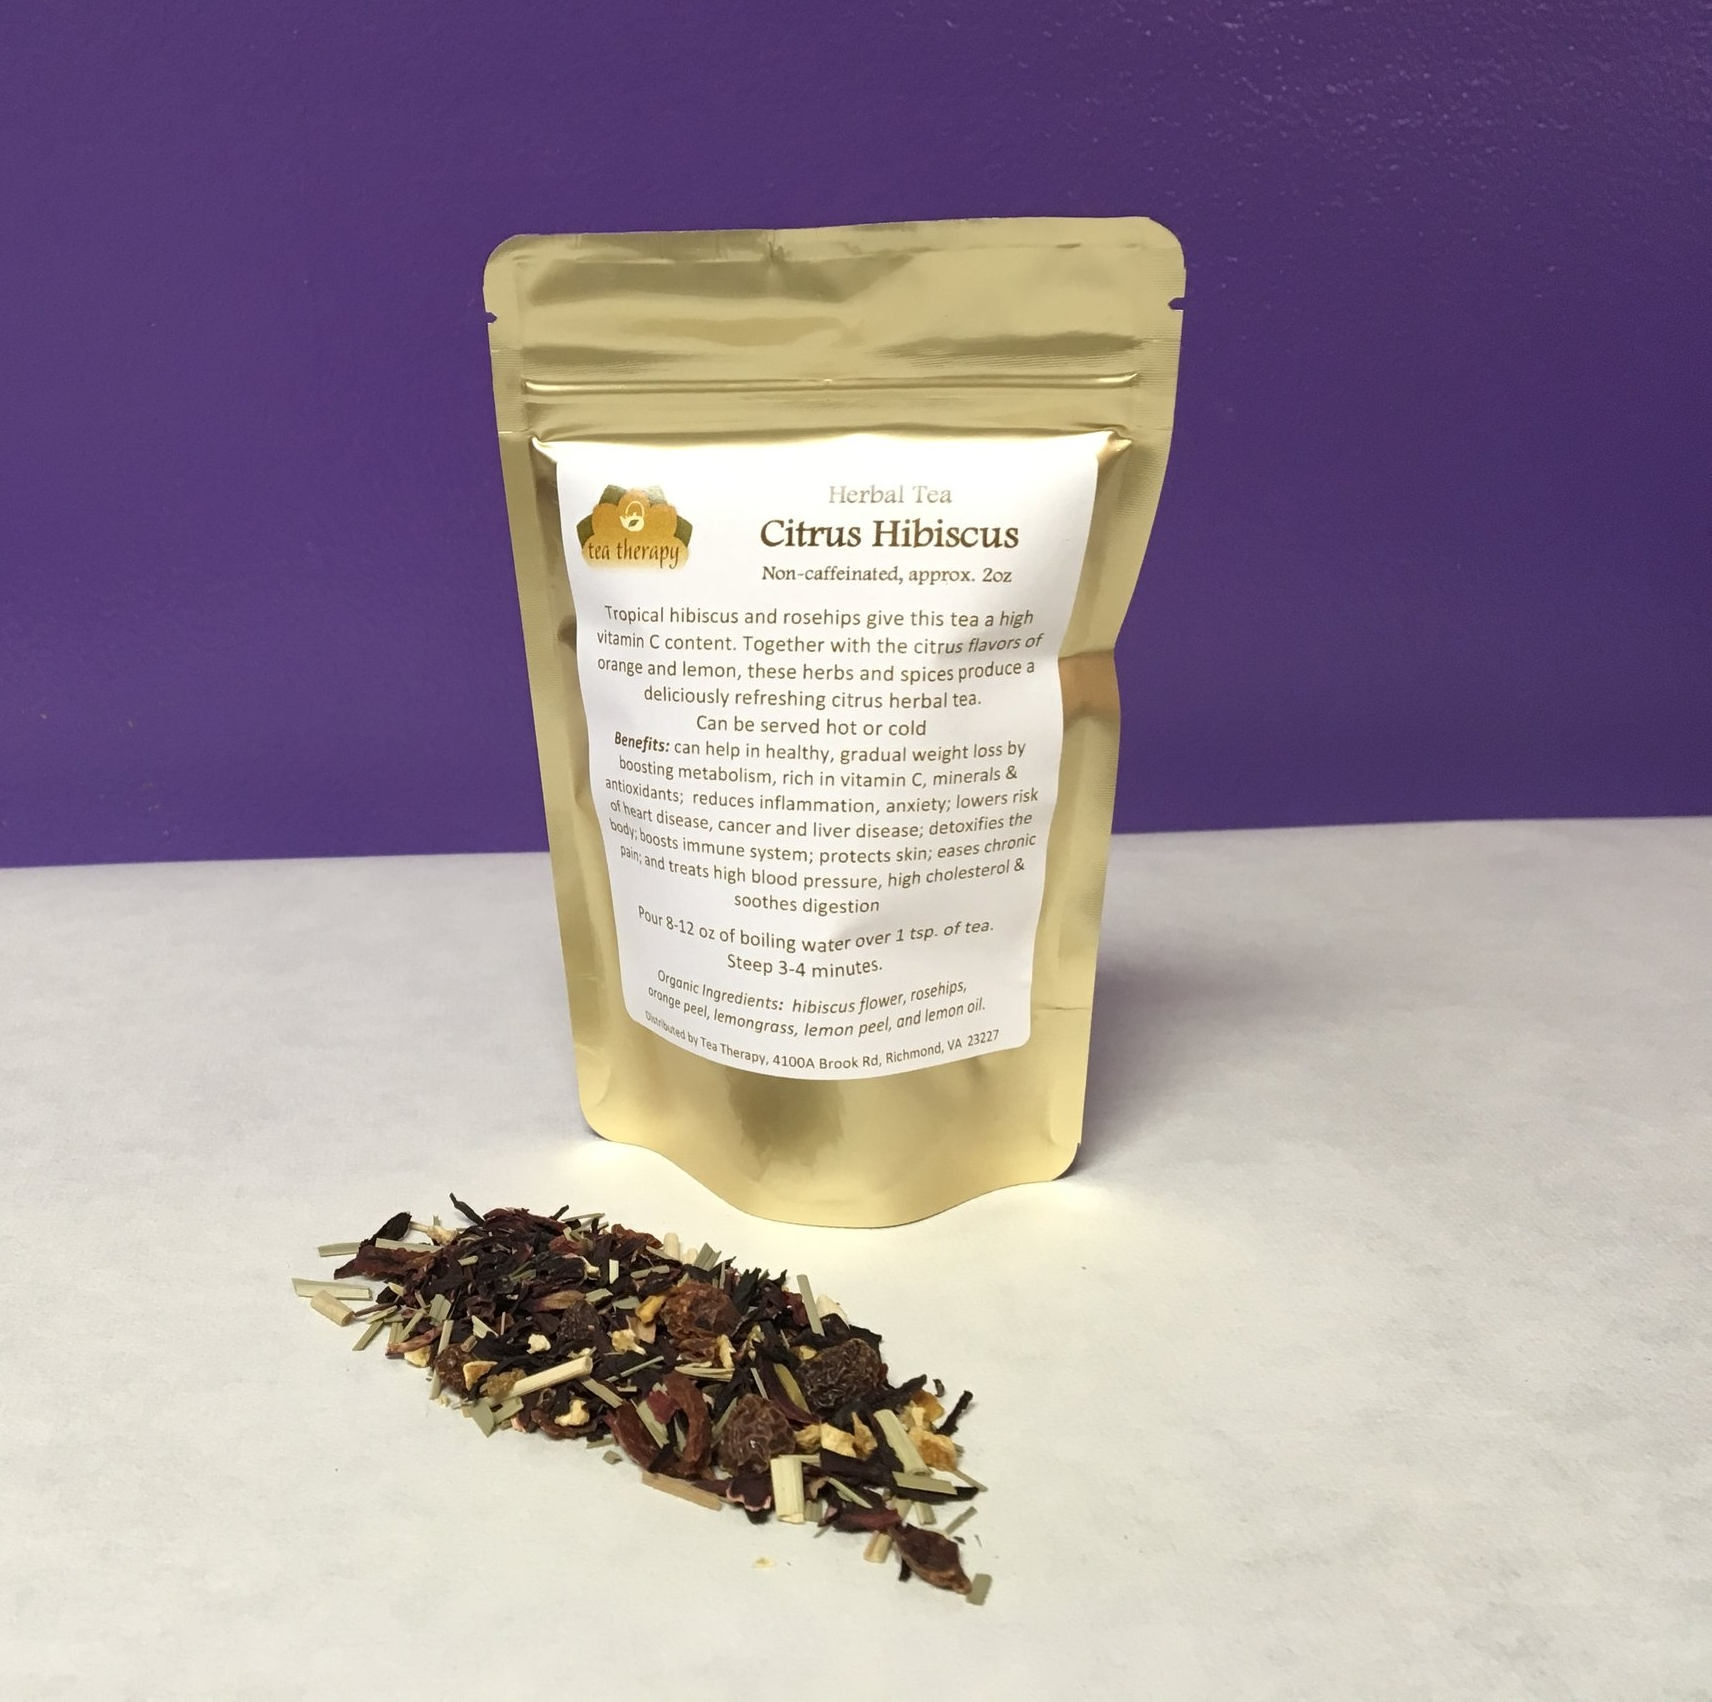 Citrus Hibiscus - Herbal tea – non-caffeinated - Tropical hibiscus and rosehips give this tea a high vitamin C content. Together with the citrus flavors of orange and lemon, these herbs and spices produce a deliciously refreshing citrus herbal tea. Can be served hot or cold. Benefits: can help in healthy, gradual weight loss by boosting metabolism, rich in vitamin C, minerals & antioxidants; reduces inflammation, anxiety; lowers risk of heart disease, cancer and liver disease; detoxifies the body; boosts immune system; protects skin; eases chronic pain; and treats high blood pressure, high cholesterol & soothes digestion Organic Ingredients: hibiscus flower, rosehips, orange peel, lemongrass, lemon peel, and lemon oil.